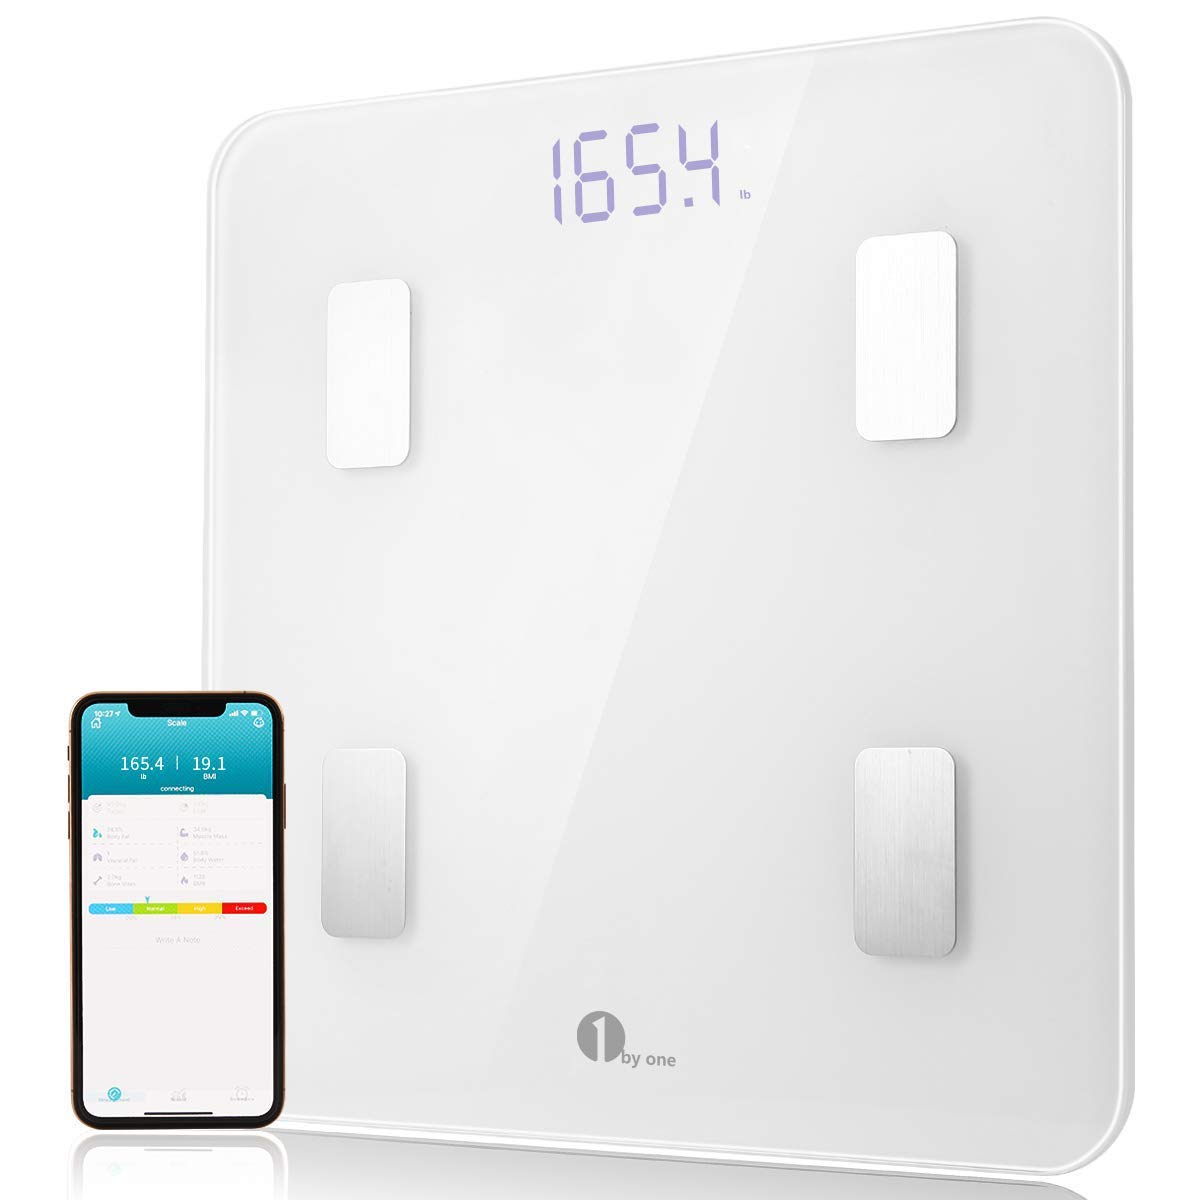 1byone Smart Body Fat Scale Body Composition Analyzer, Bathroom Digital Weight Scale with Smartphone App, Sync Data with Apple Health, Google Fit & Fitbit APP - White by 1 BY ONE